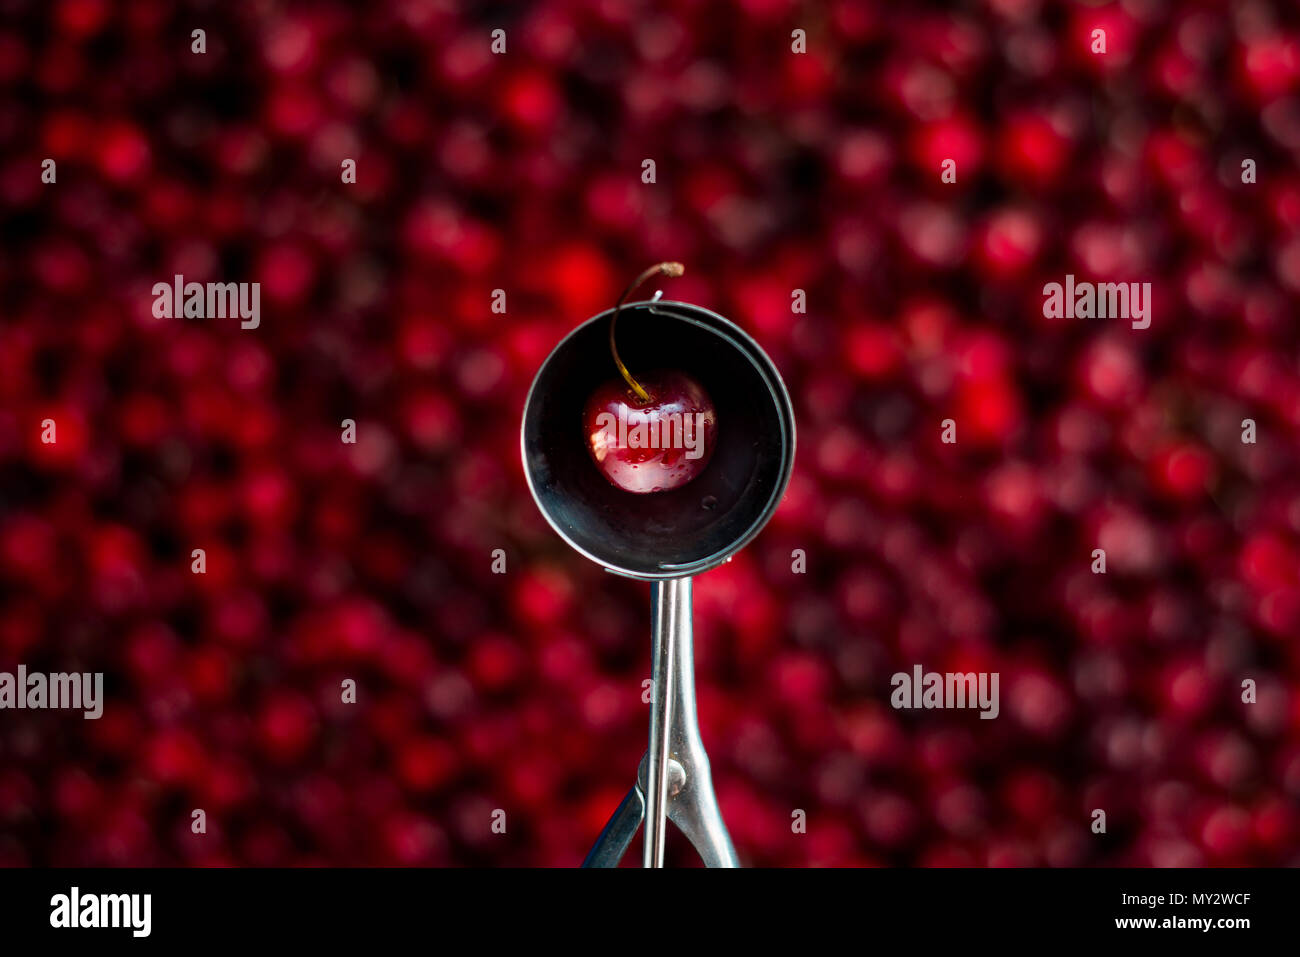 Fresh cherry in an ice cream spoon on out of focus berry background. Making ice cream concept with copy space. - Stock Image